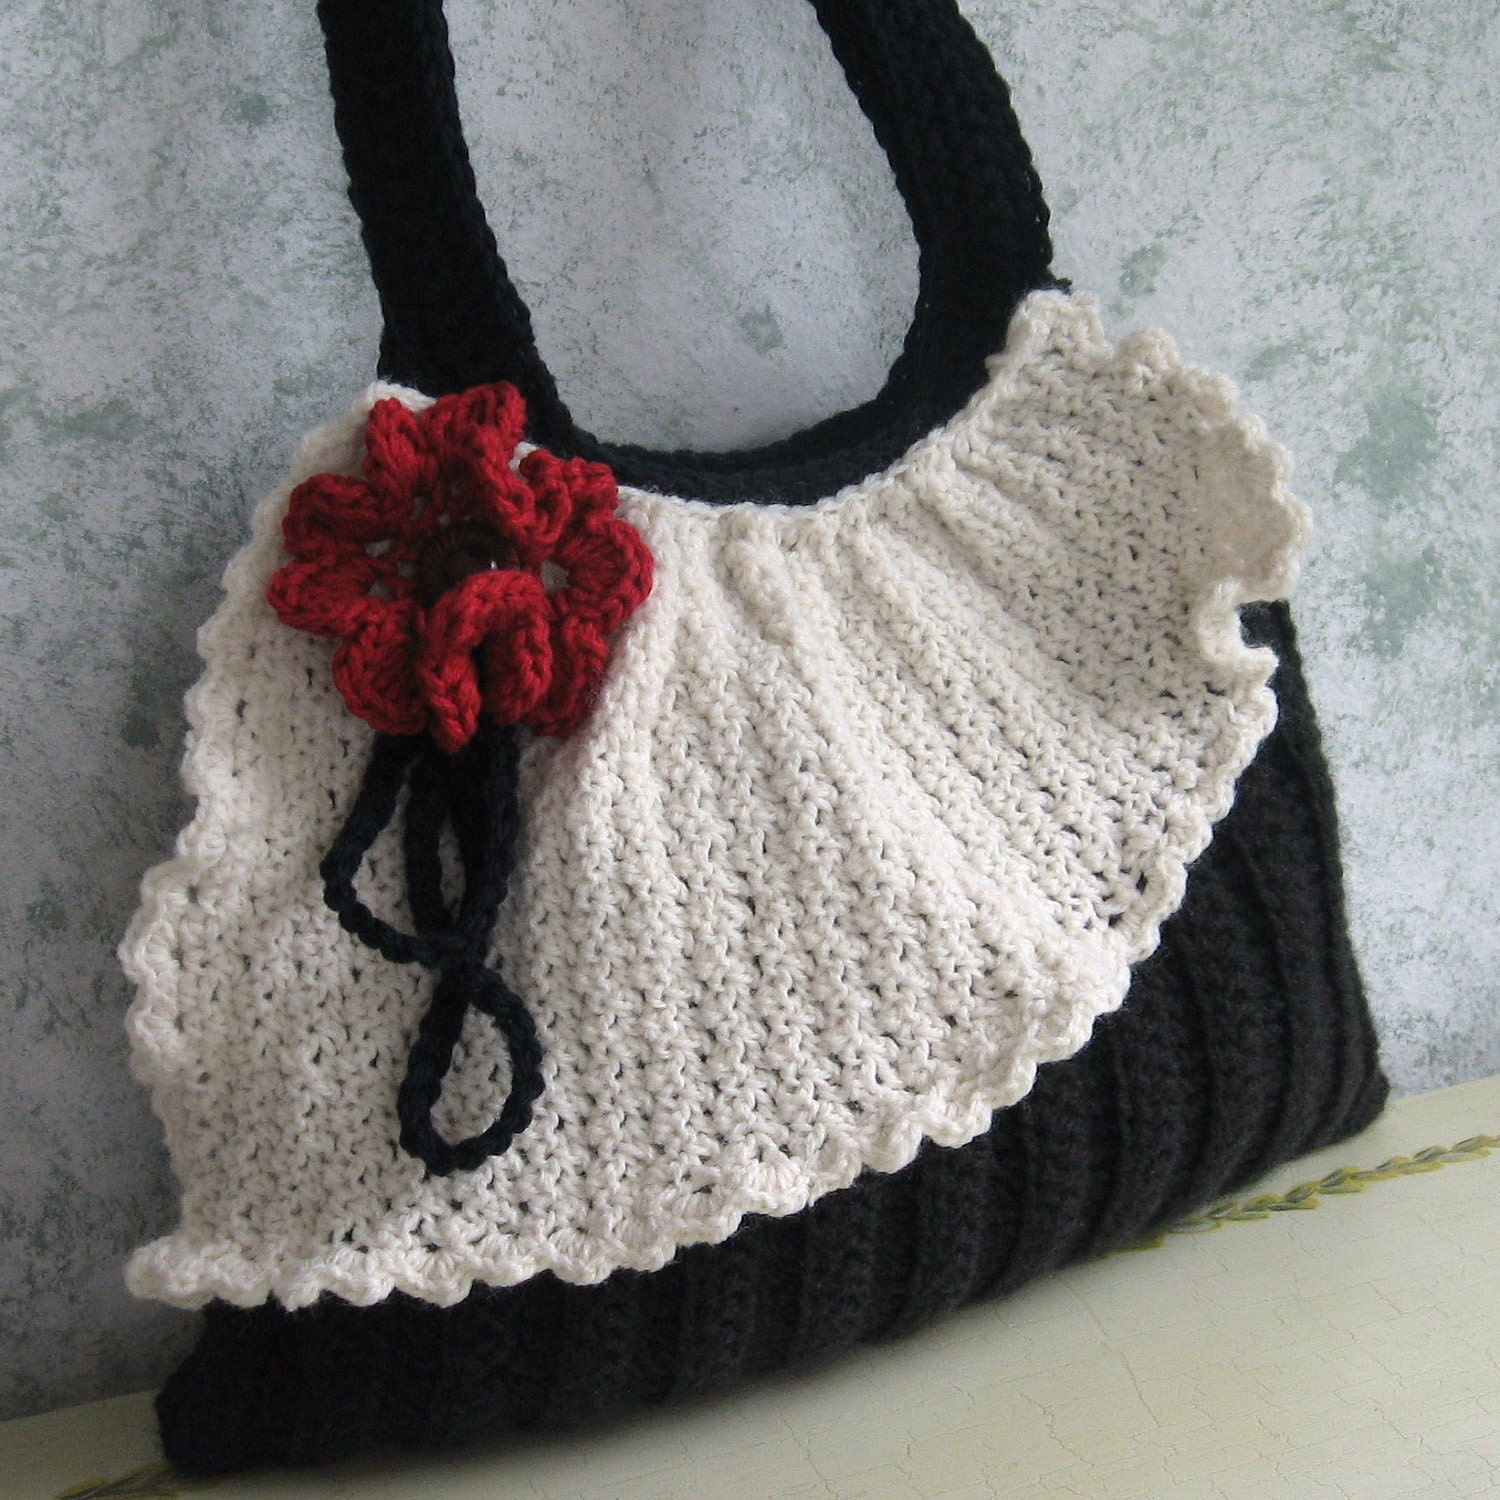 Crocheting Purses : Crochet Purse Pattern Pleated Bag With Drape And by kalliedesigns